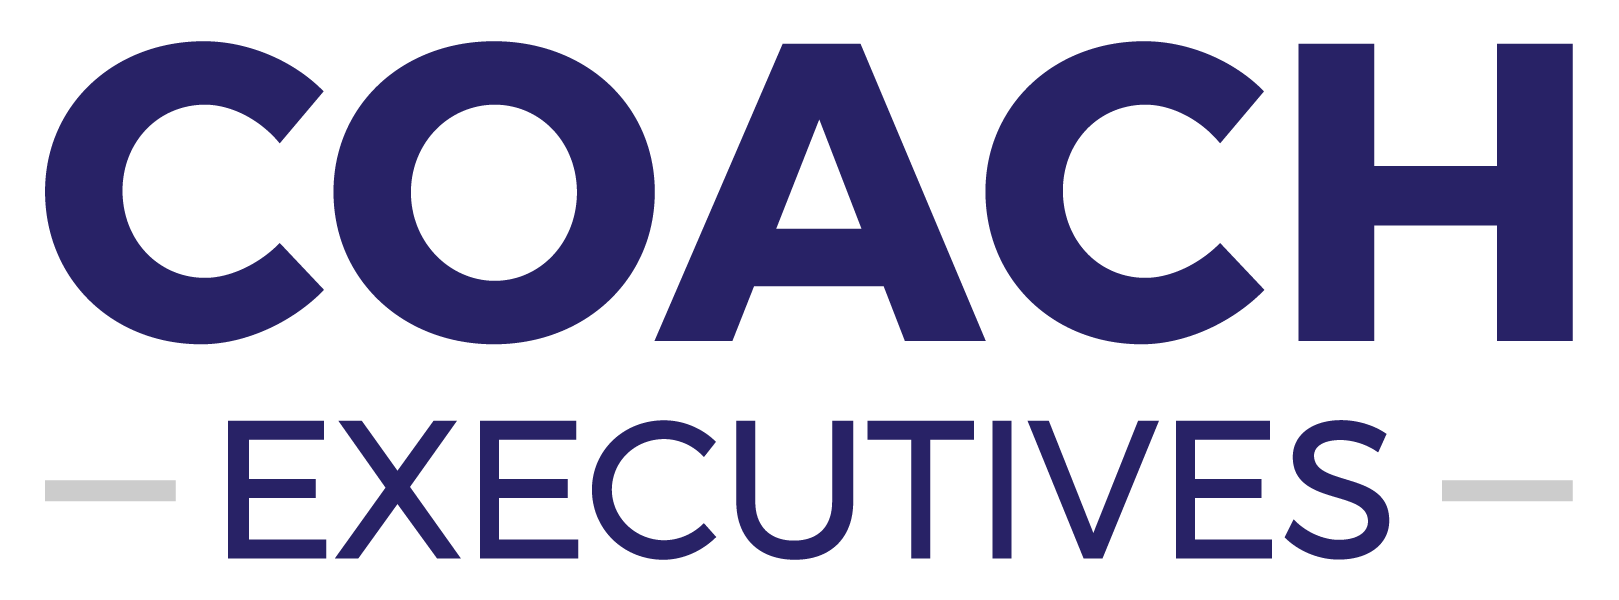 Logo Coach Executives